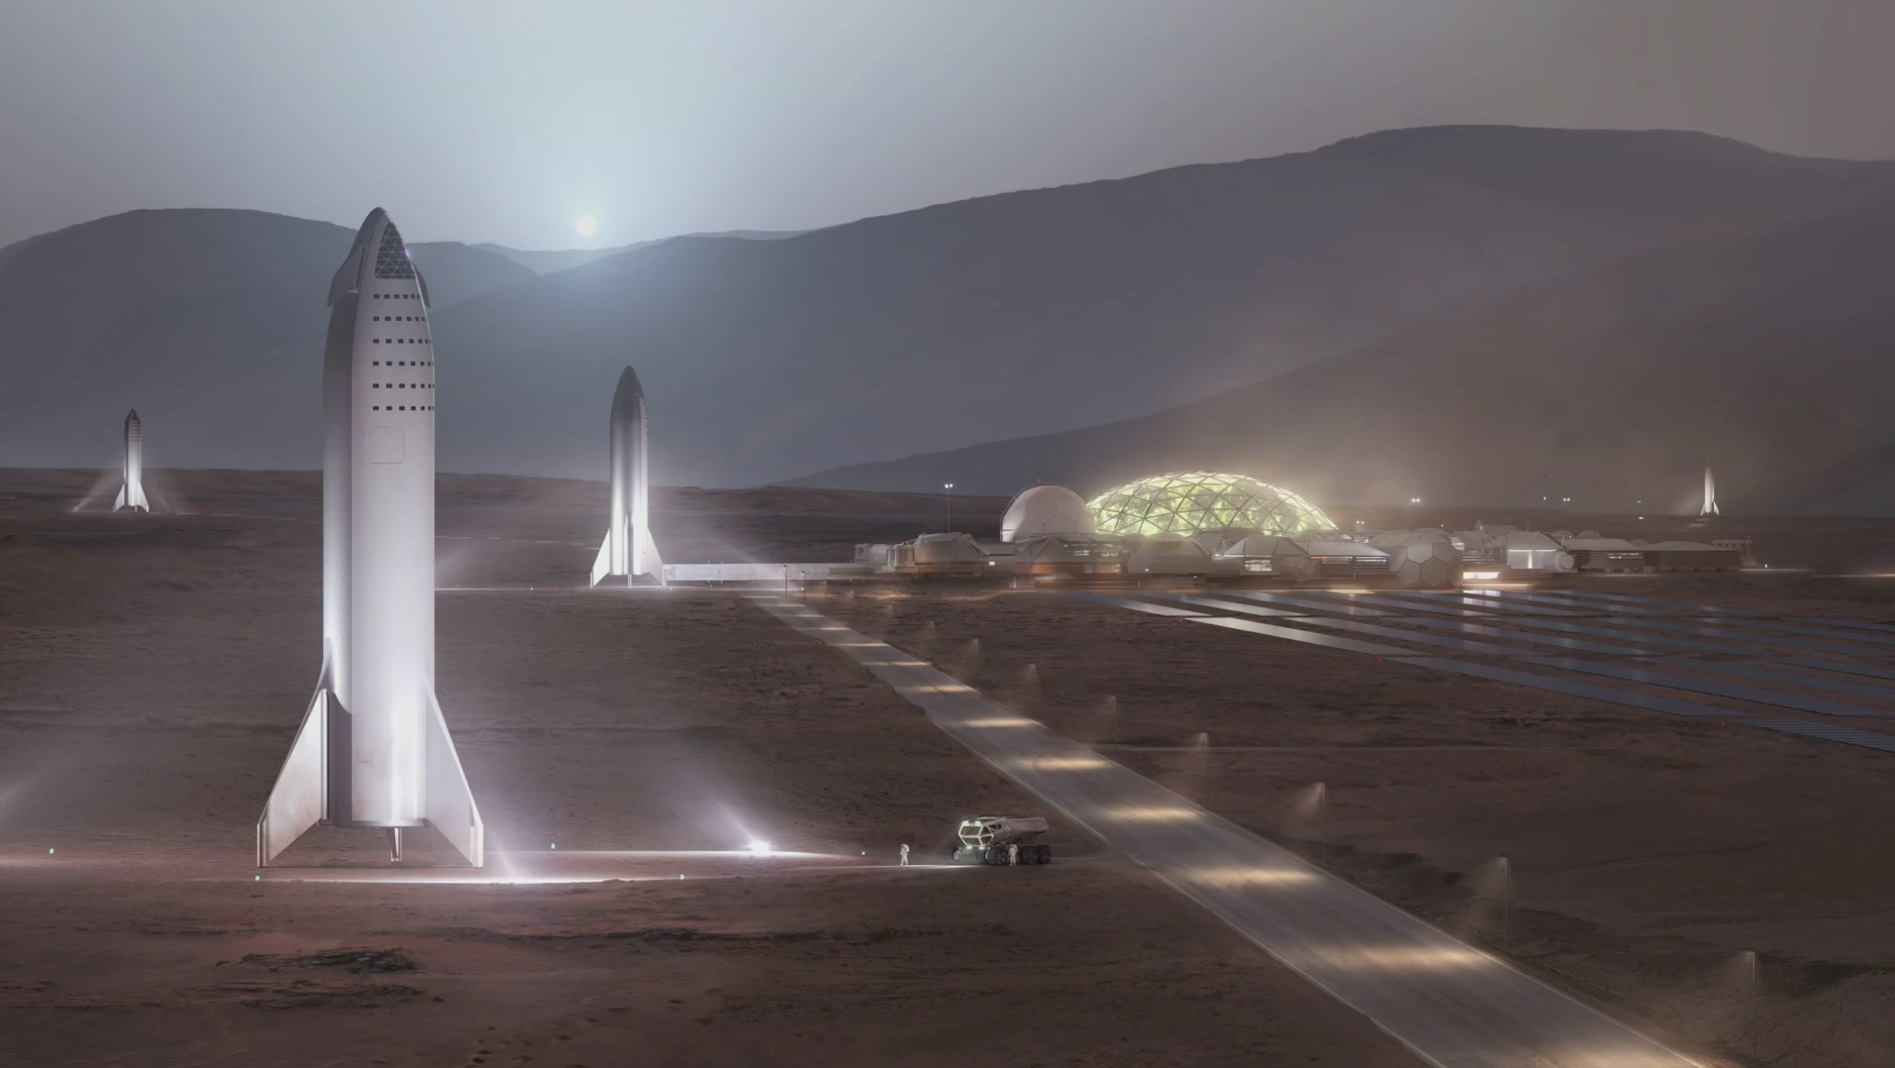 18 new details about Elon Musk's redesigned, moon-bound 'Big F*ing Rocket' spacex1